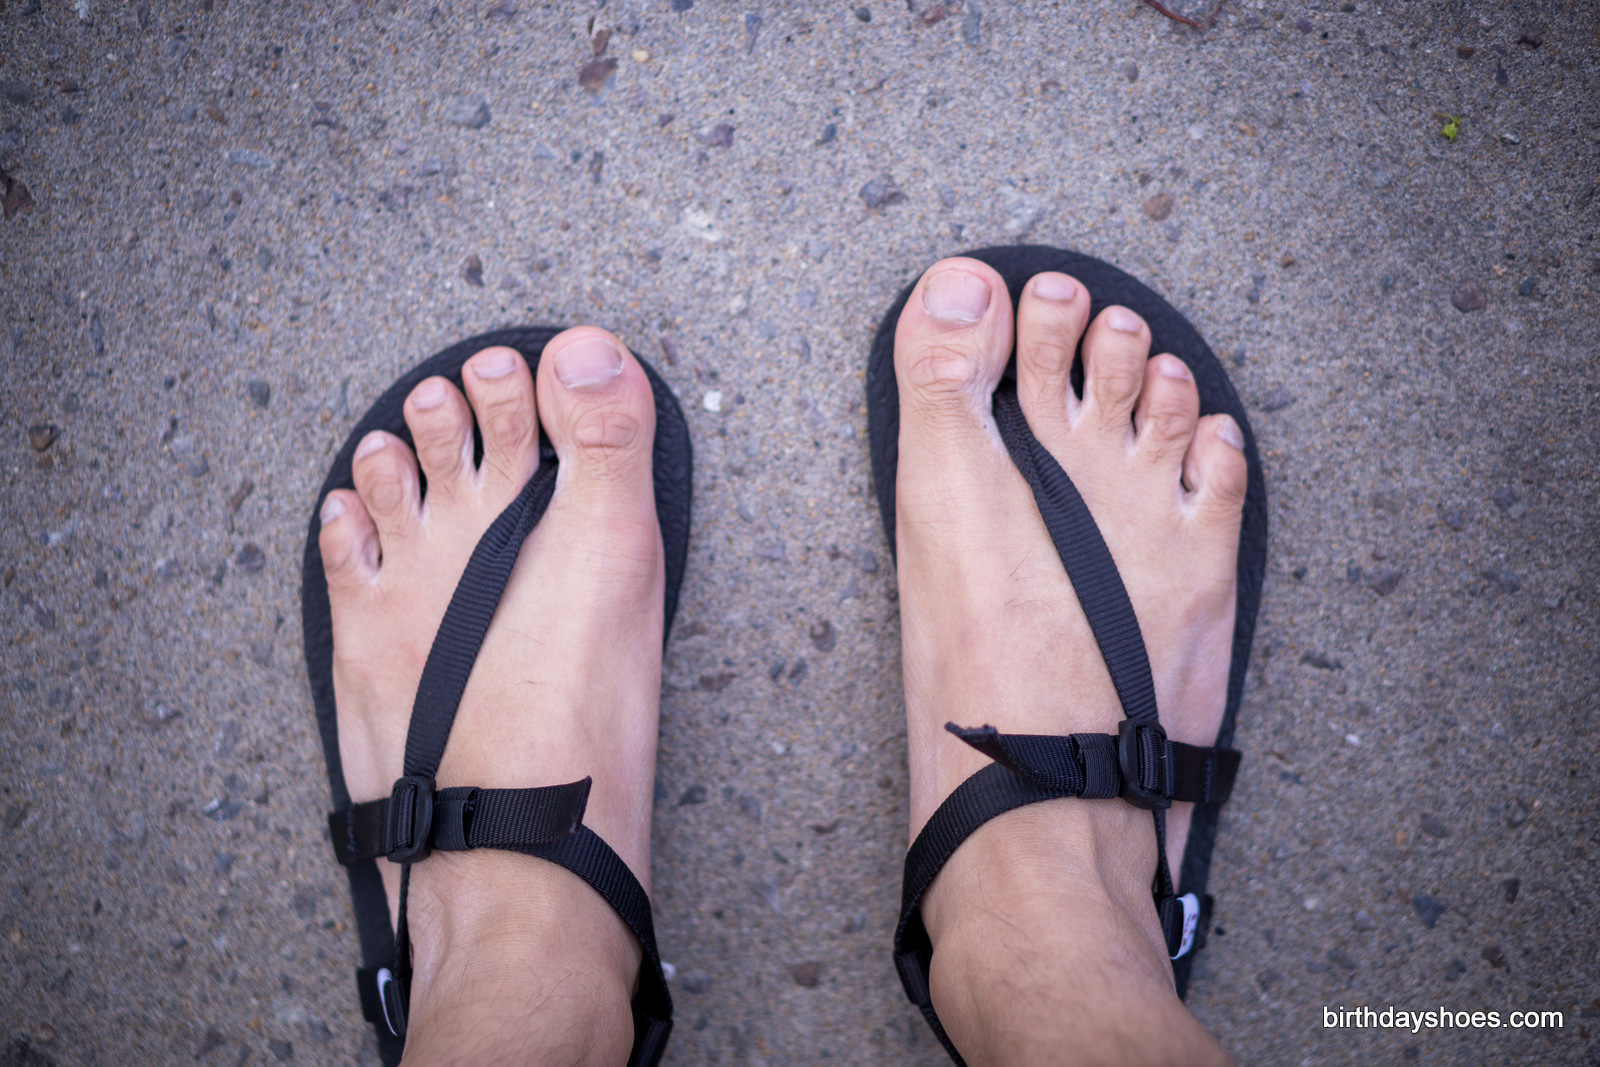 The single loop design creates a wide spread towards the sides of the foot